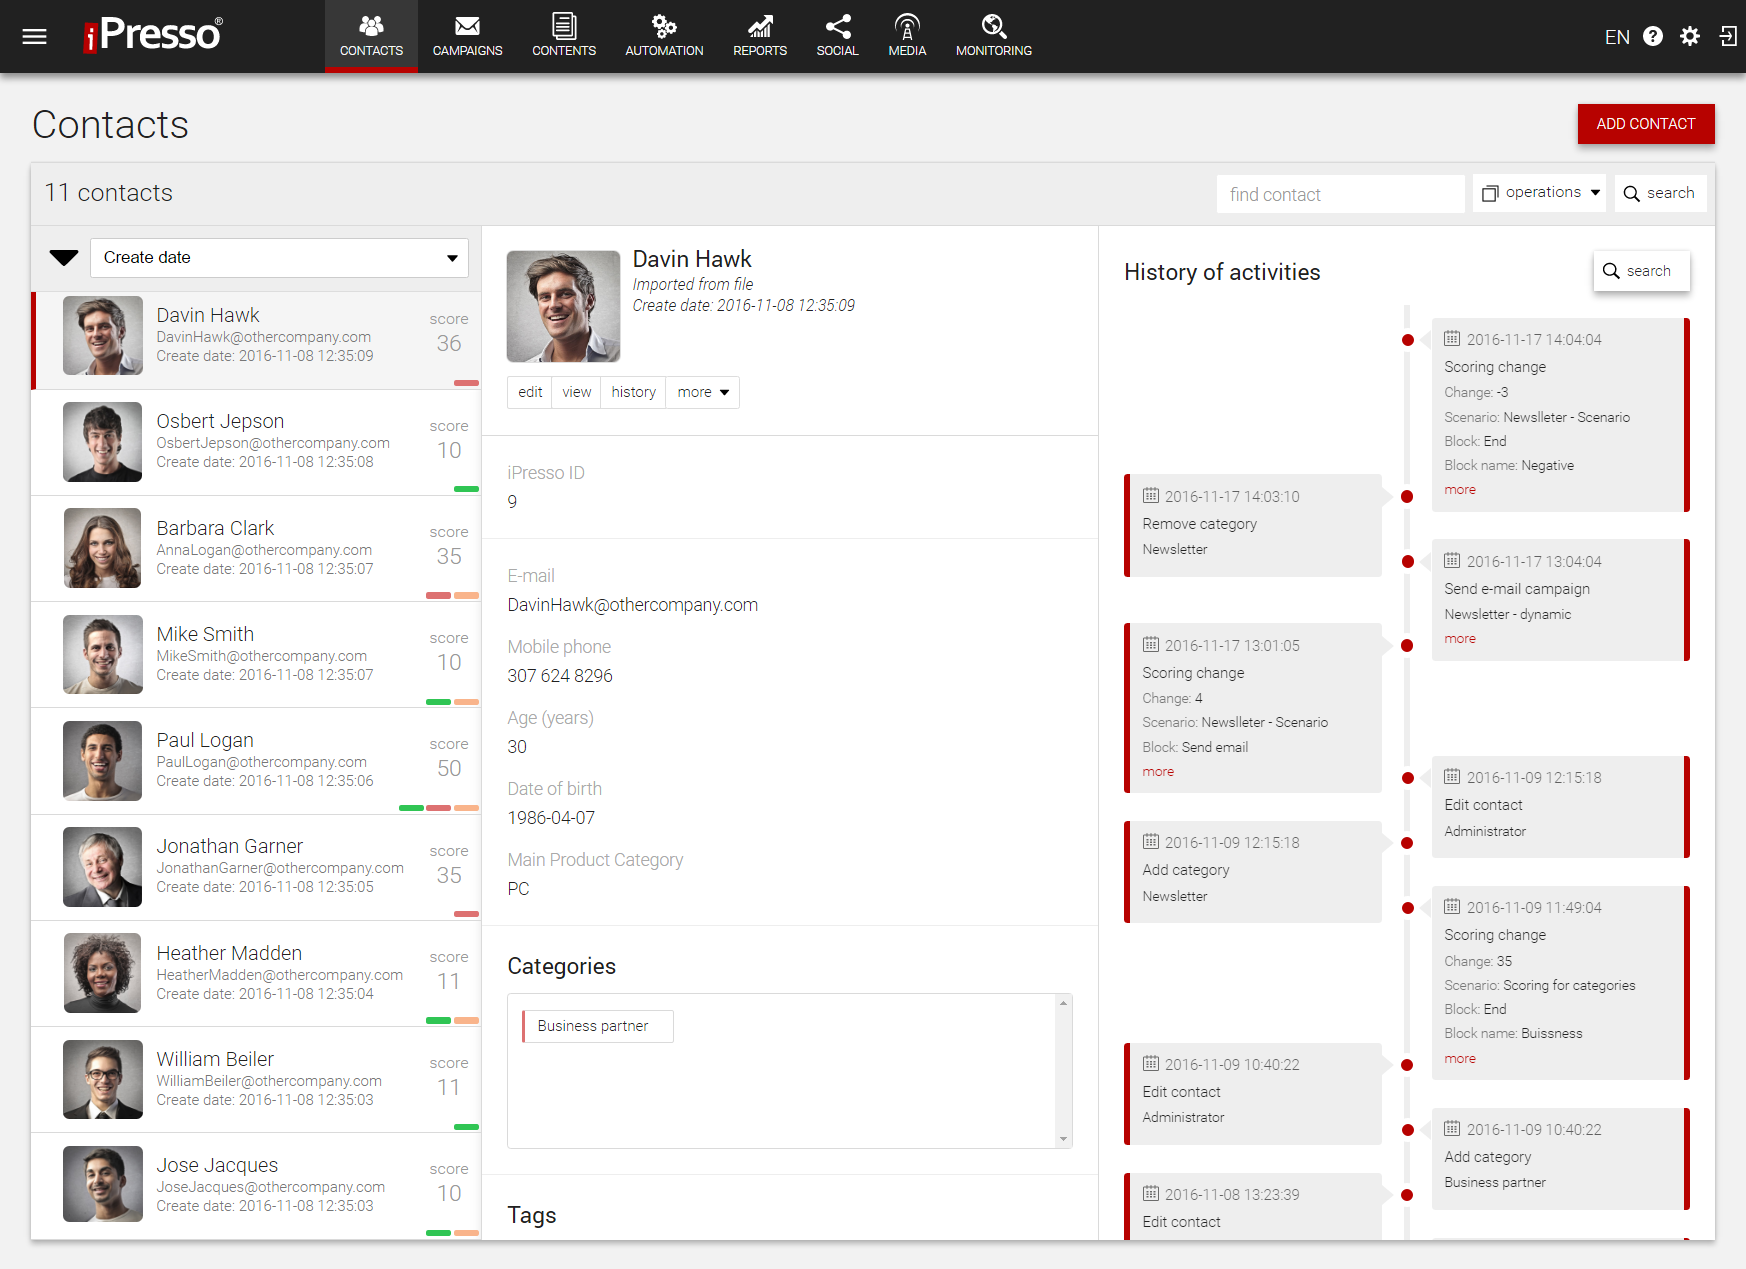 The contact manager includes a full contact activity history